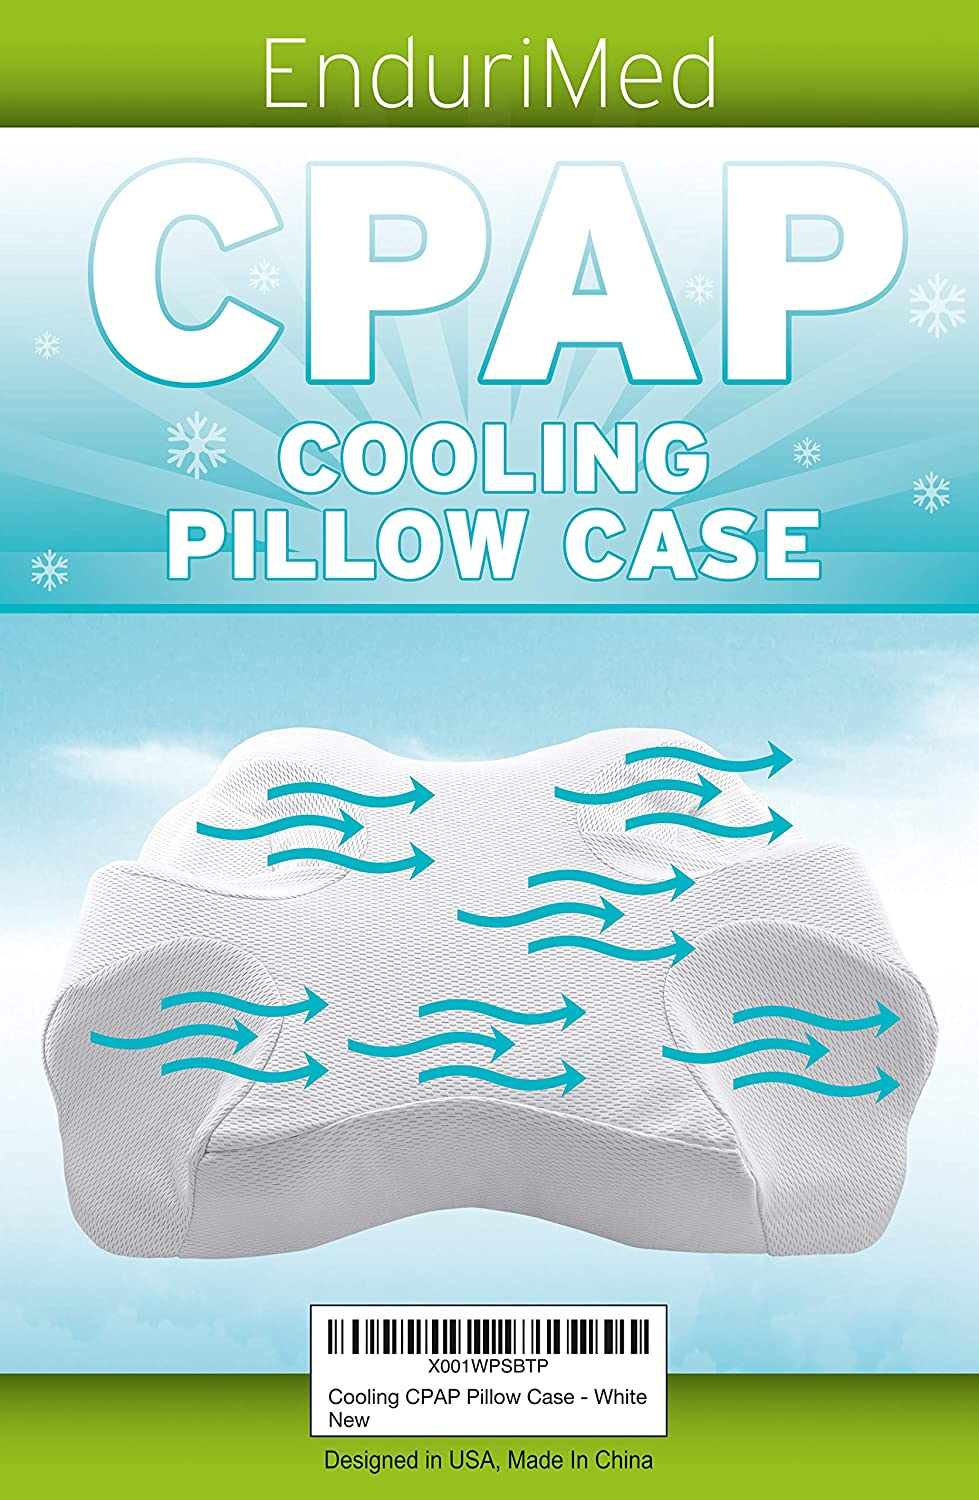 Pillow Case for Use with Endurimed CPAP Comfort Pillow - Cooling Fabric, White